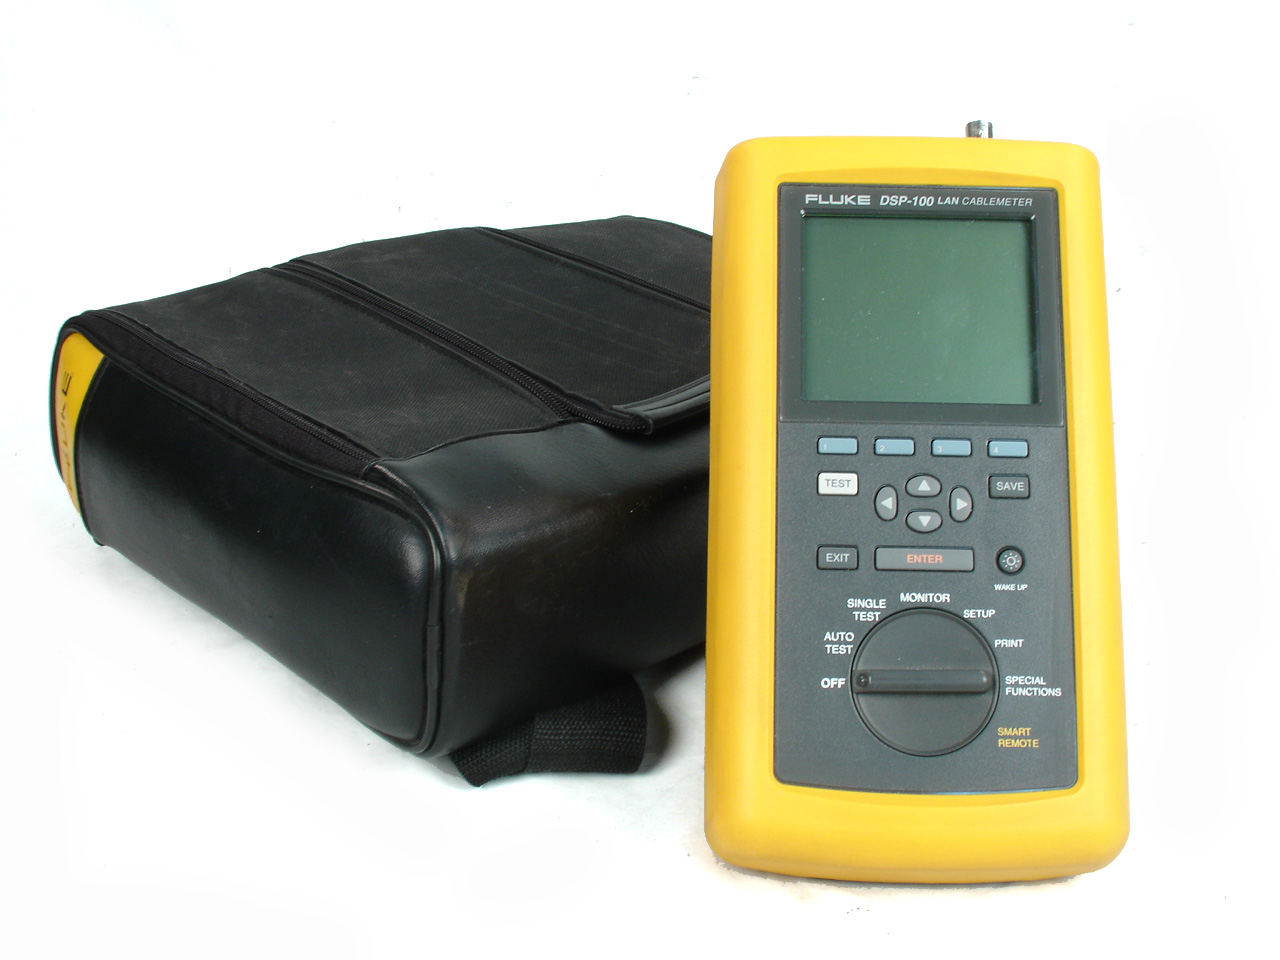 Fluke DSP-100 for sale